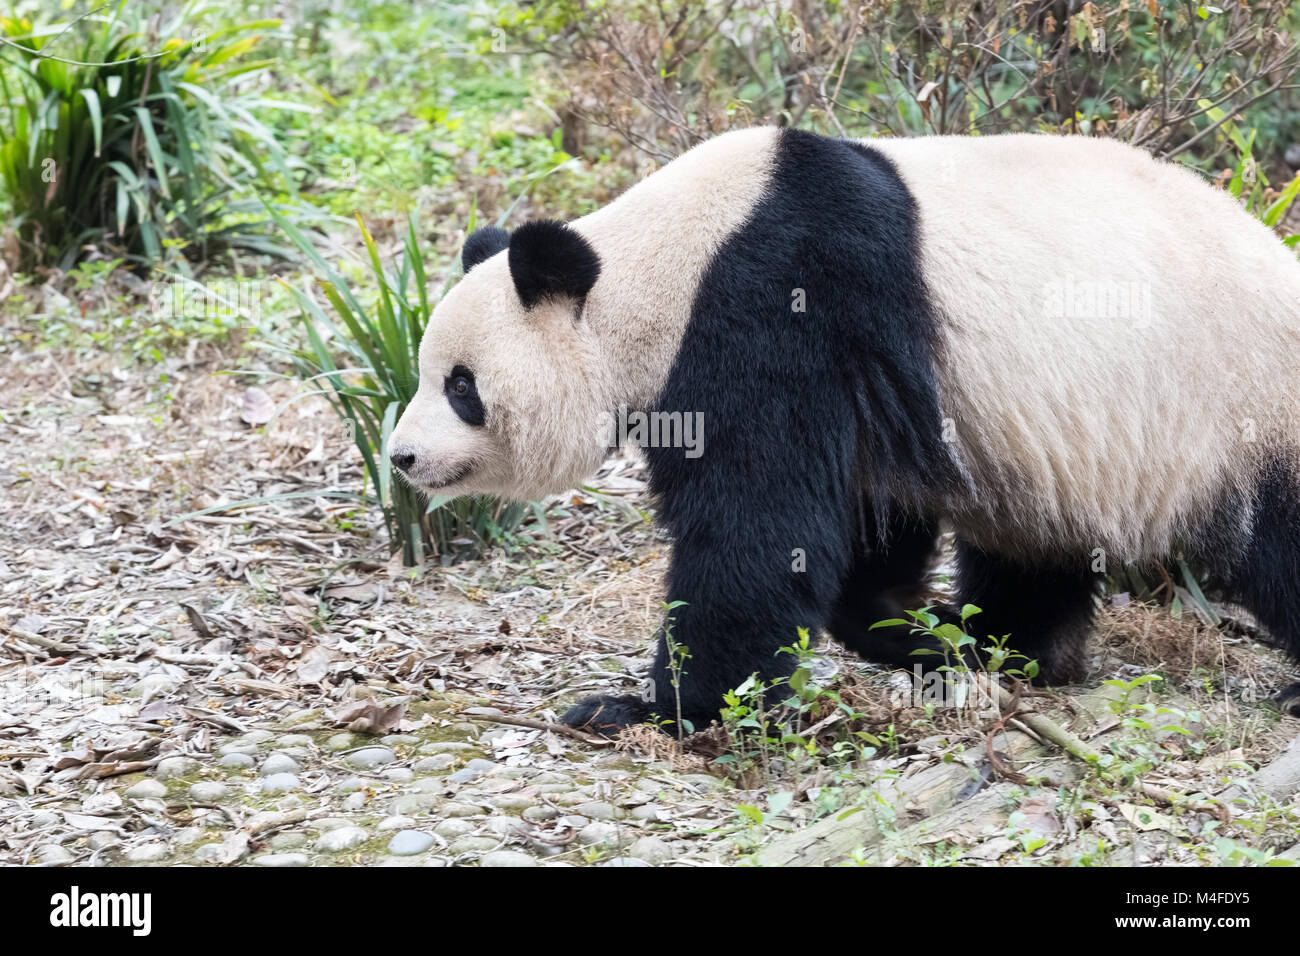 giant panda closeup - Stock Image